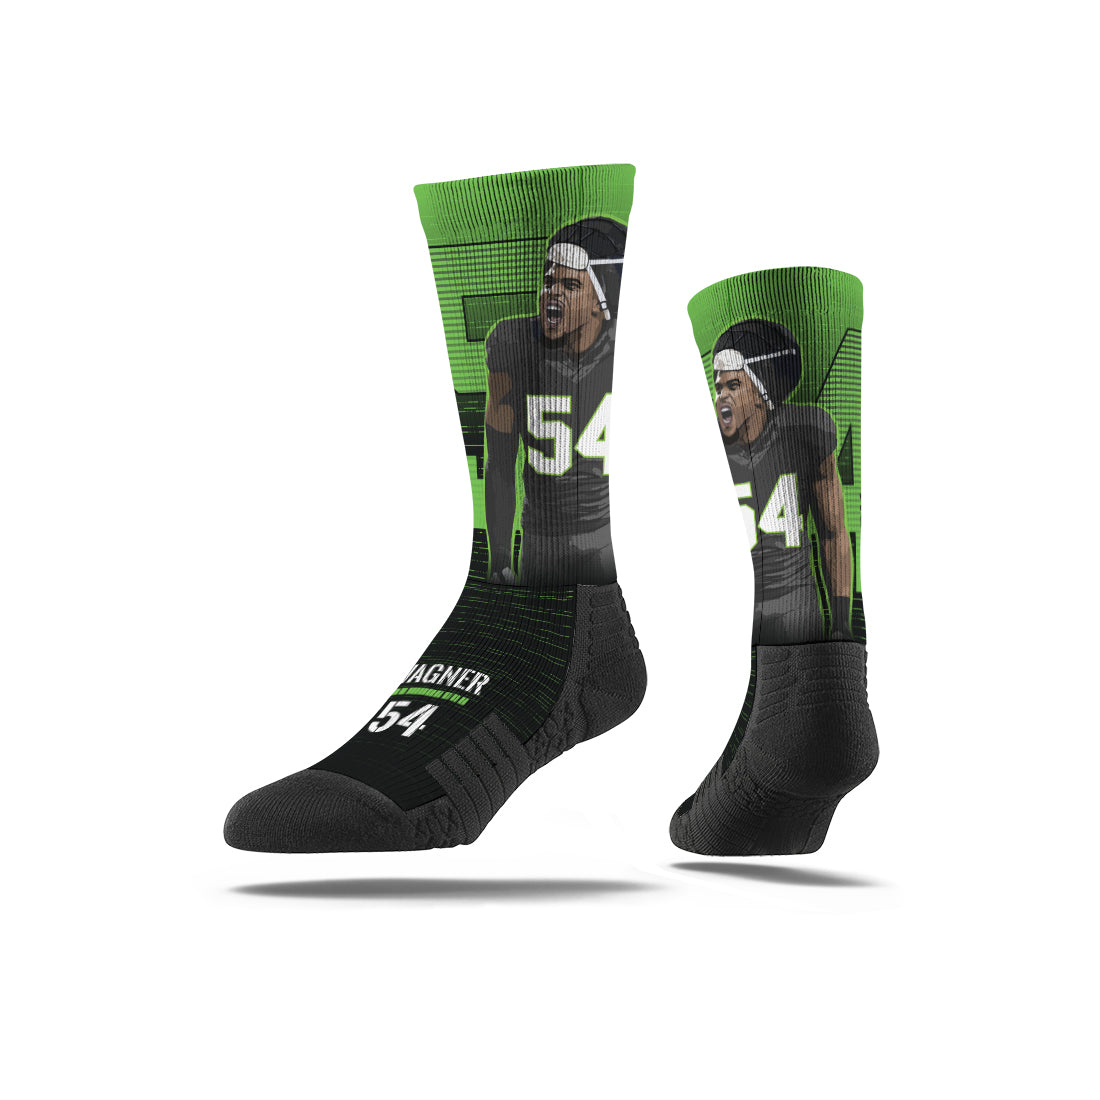 Bobby Wagner Pumped Up Socks